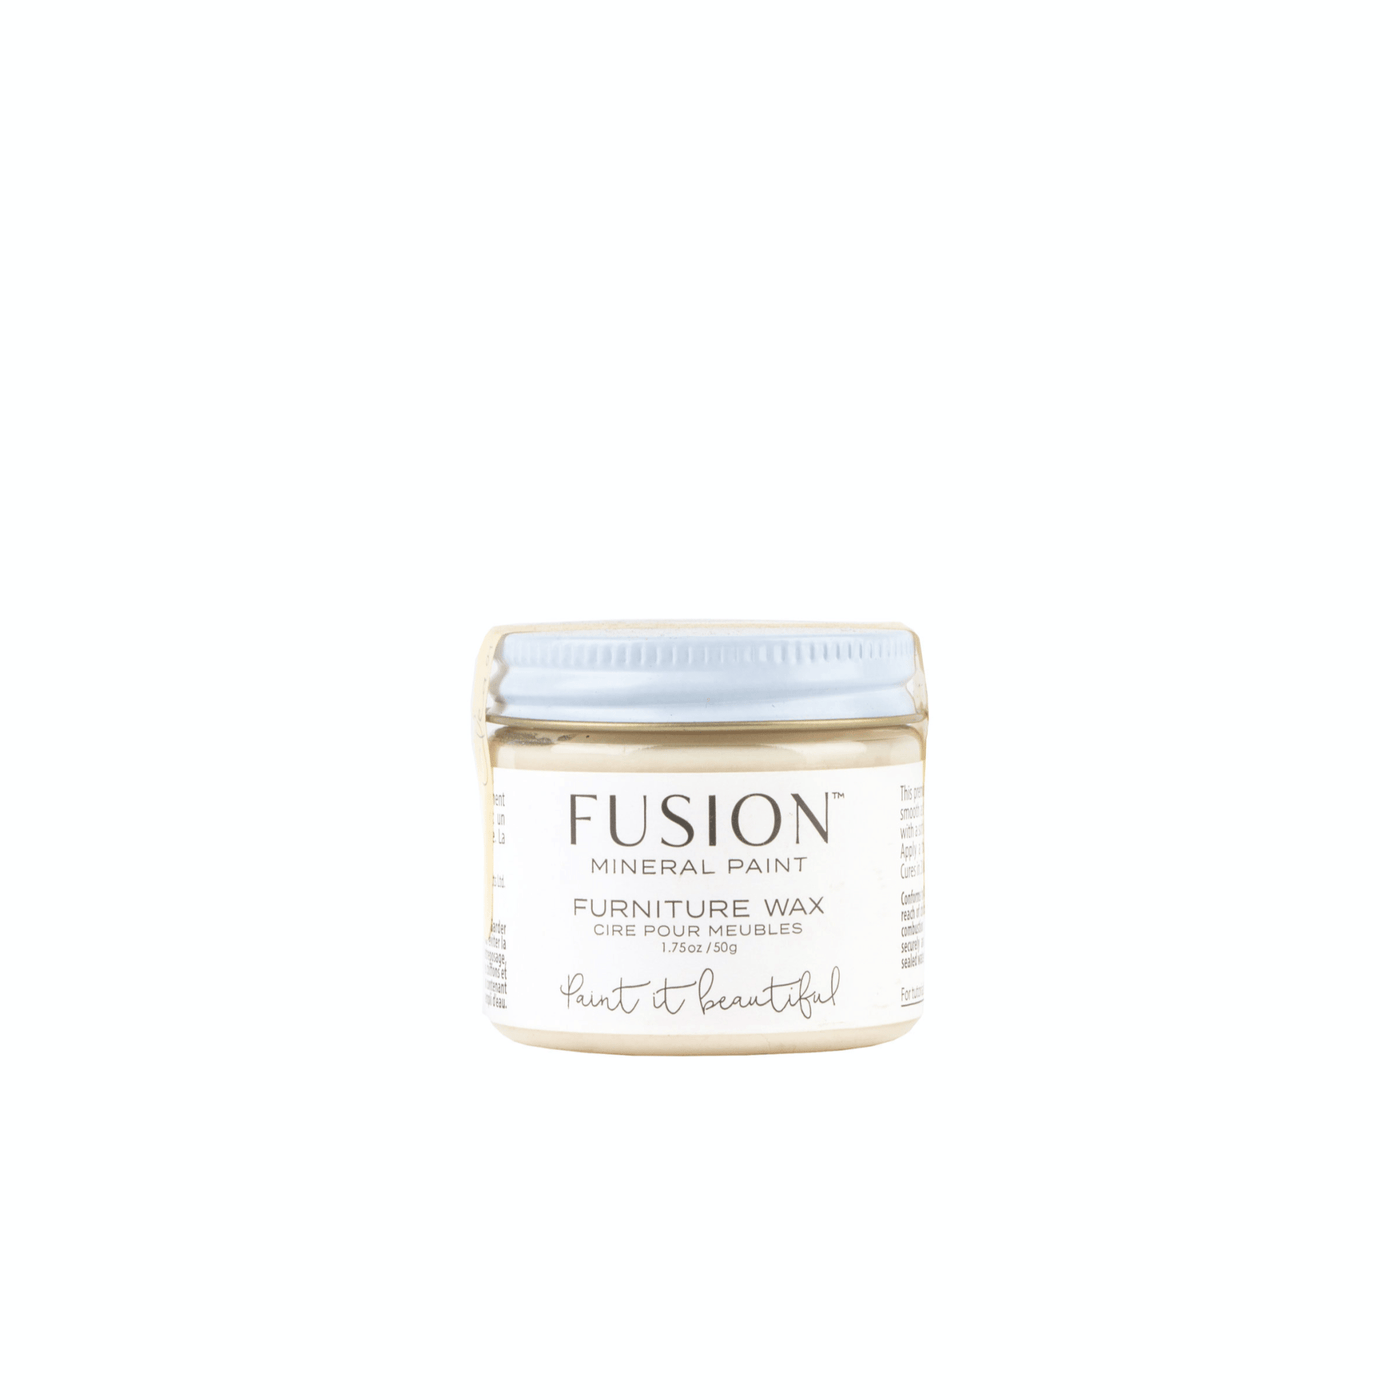 Furniture wax from Fusion Mineral Paint clear, easy-to-use, no smell wax that is museum-grade for extra luster and protection on painted furniture or bare wood. Available in 2 sizes online and in Southern California shop